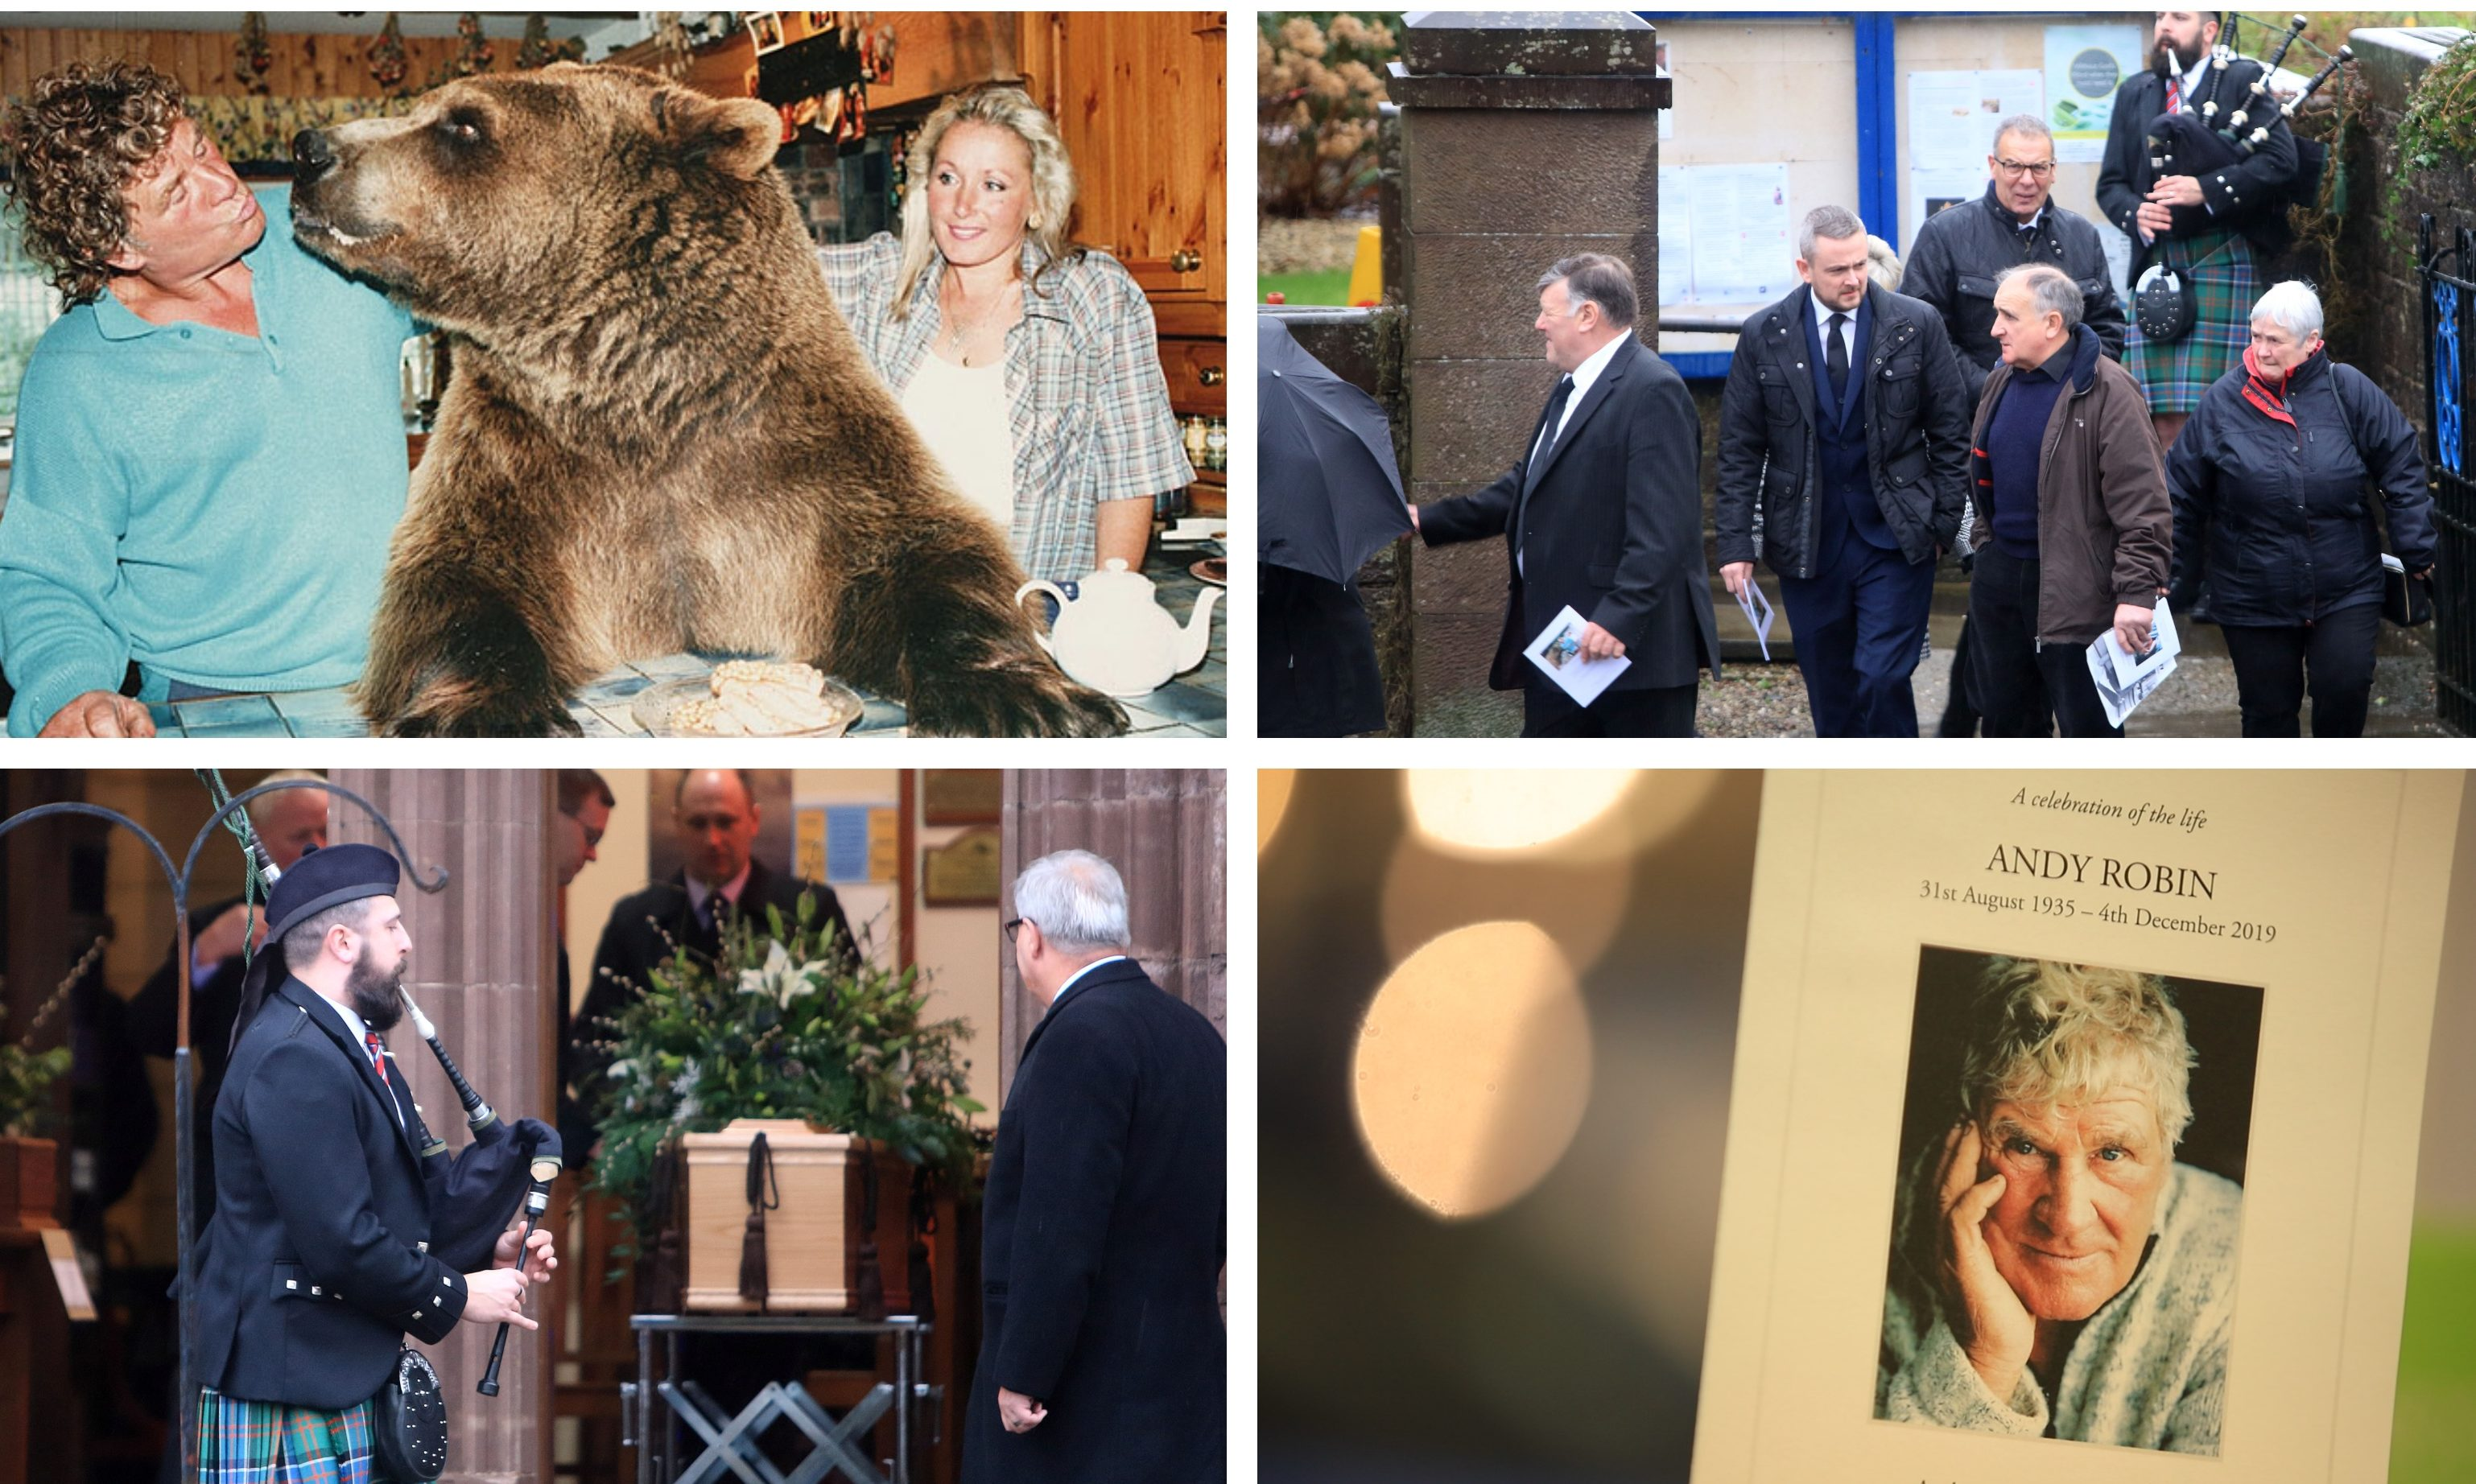 Andy Robin was laid to rest on Monday.